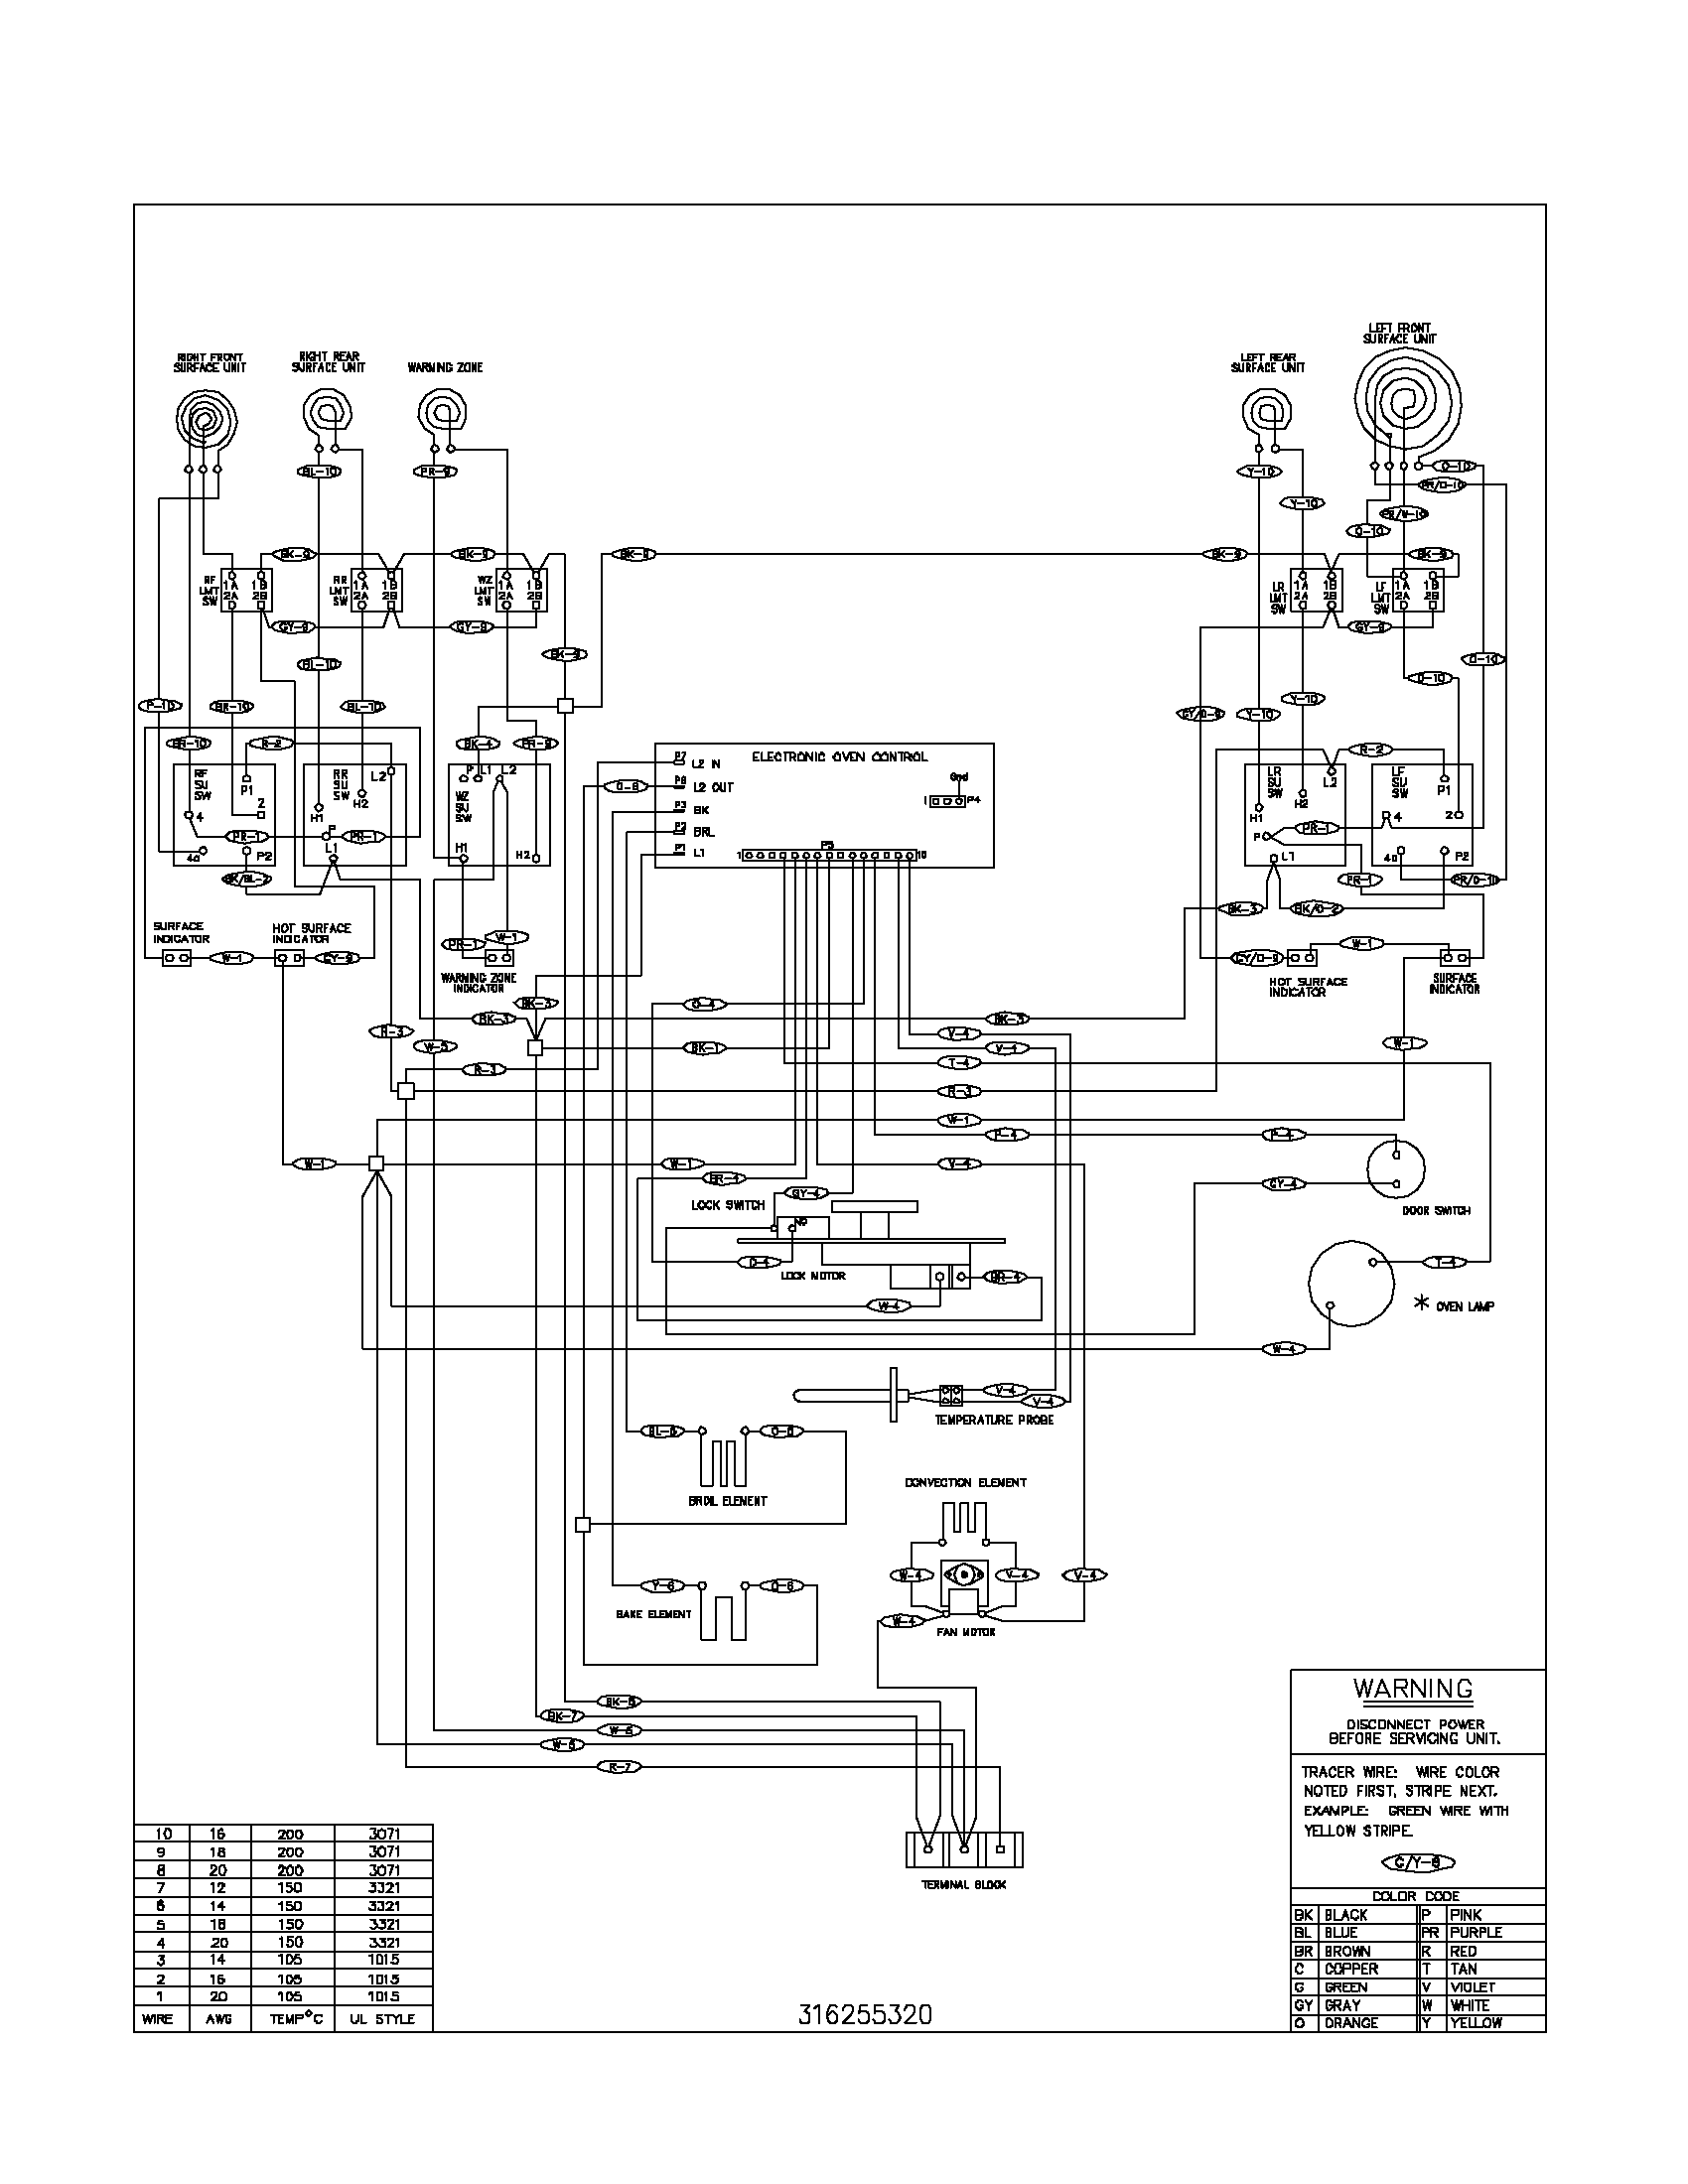 wiring diagram parts whirlpool fefl88acc electric range timer stove clocks and wiring diagram for whirlpool dryer at soozxer.org